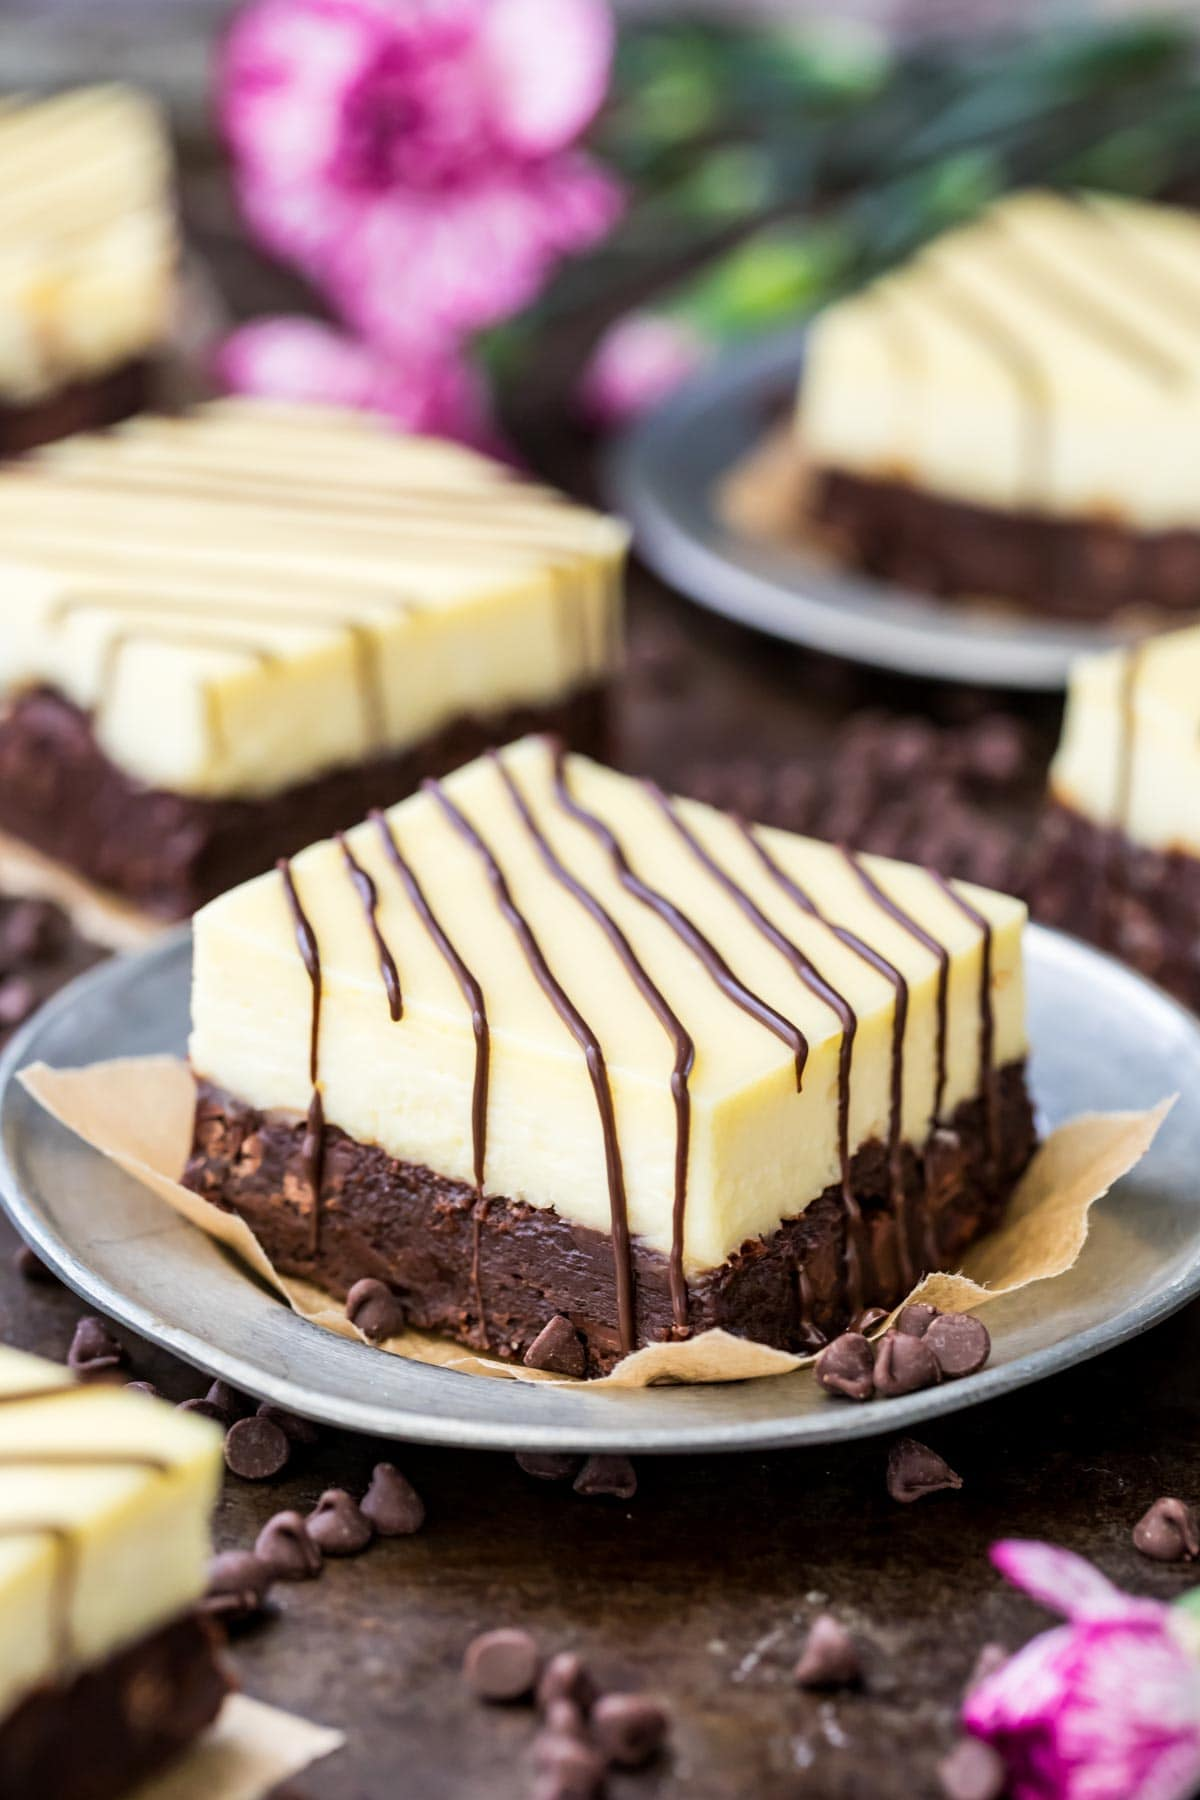 Cheesecake brownie on a gray plate.